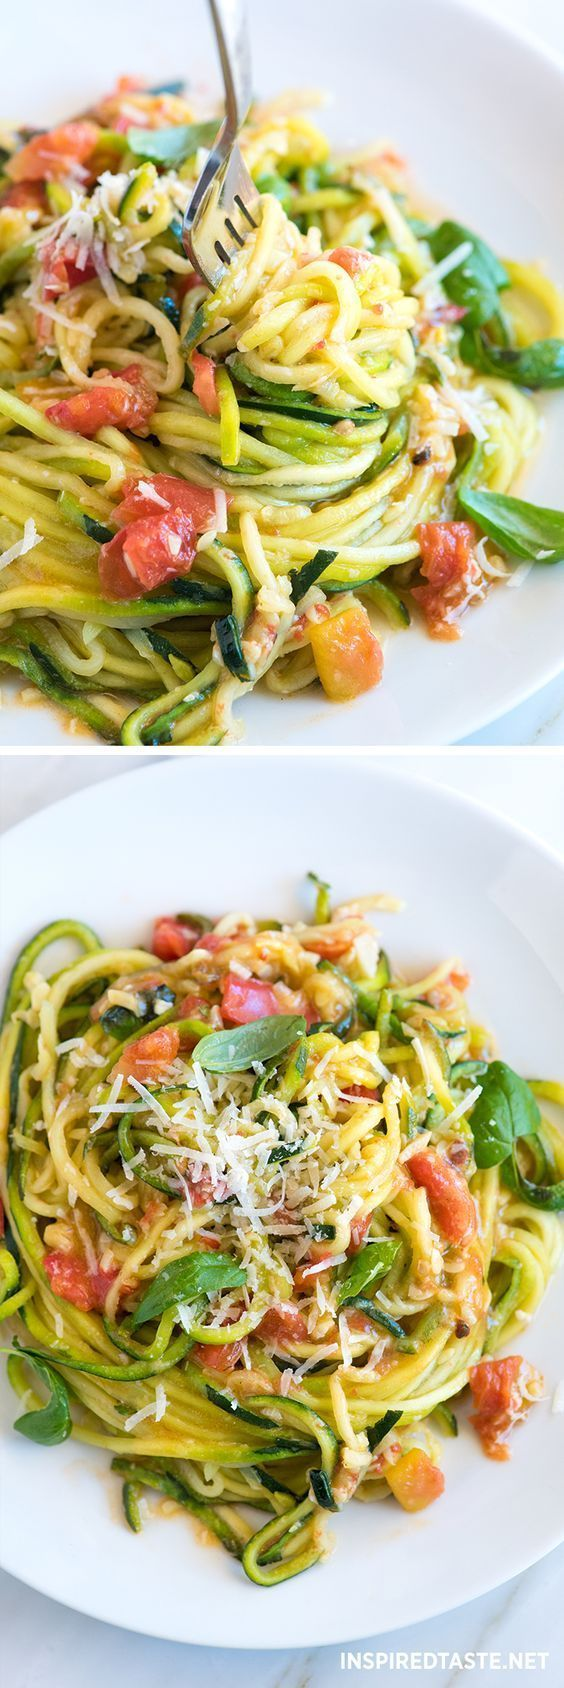 How to make our 20-minute zucchini pasta recipe with garlic, tomatoes, basil, and parmesan cheese.